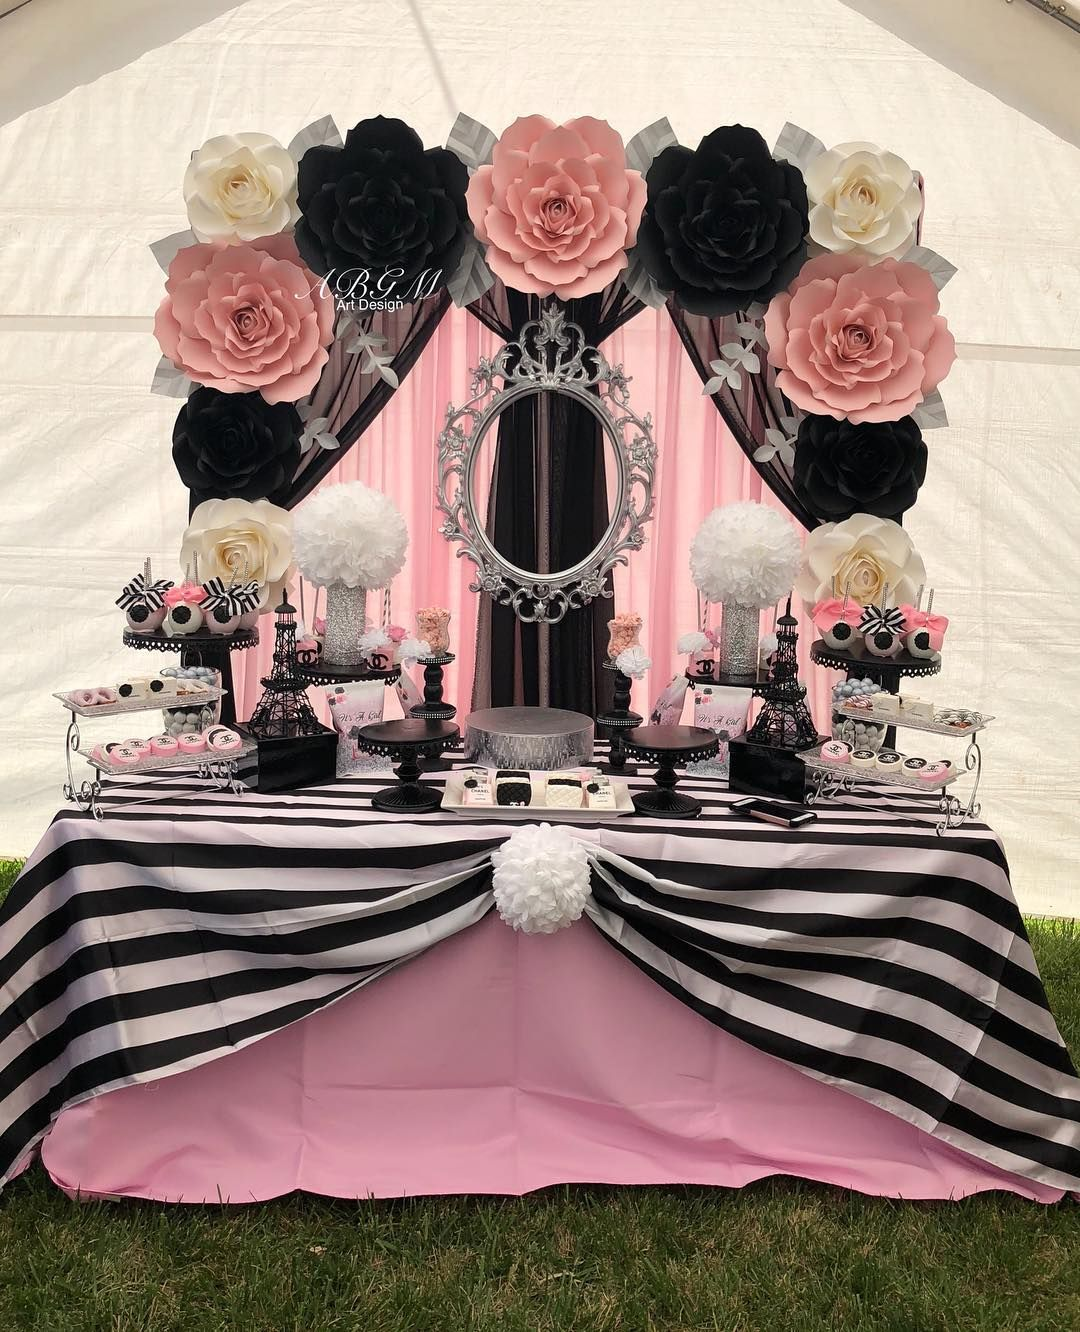 Paper flower backdrop in colors white pink black and silver used